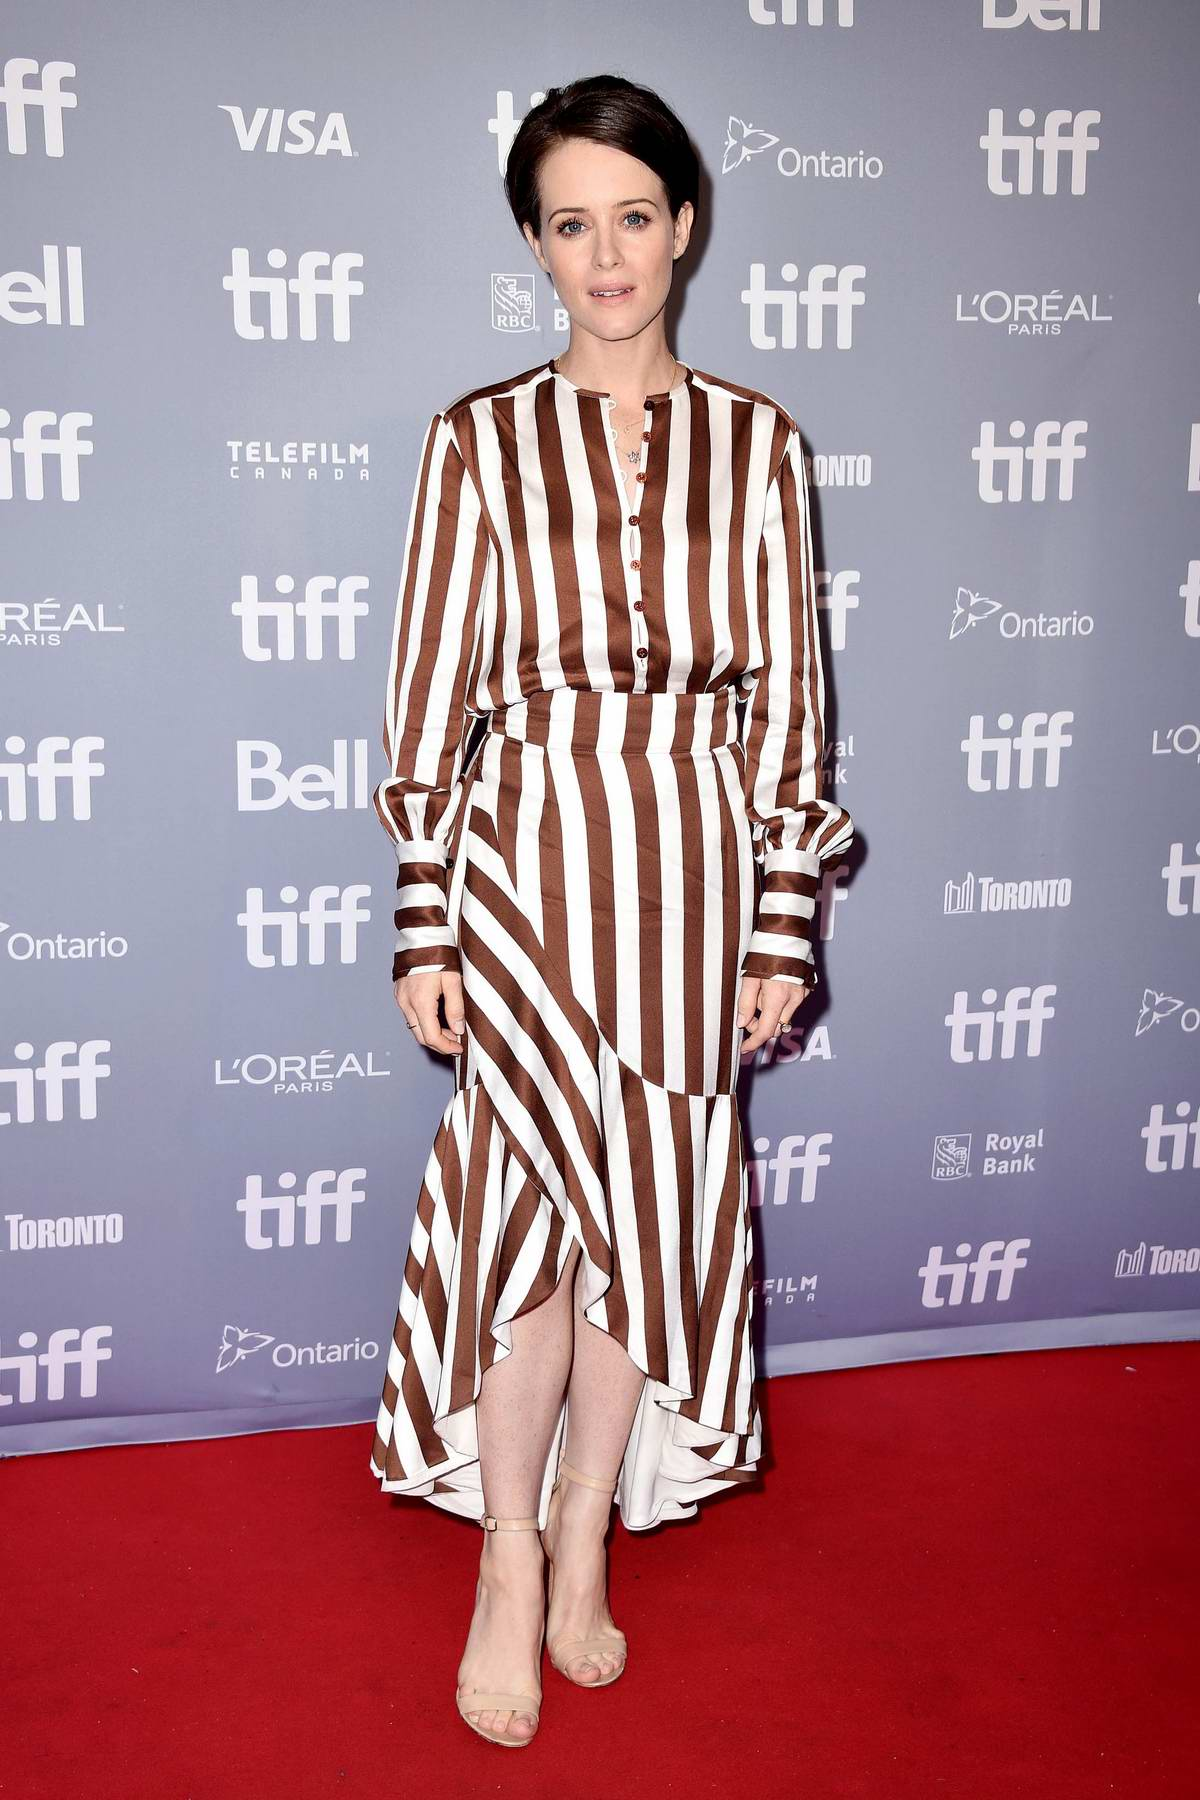 Claire Foy attends the 'First Man' press conference during 2018 Toronto International Film Festival (TIFF 2018) in Toronto, Canada